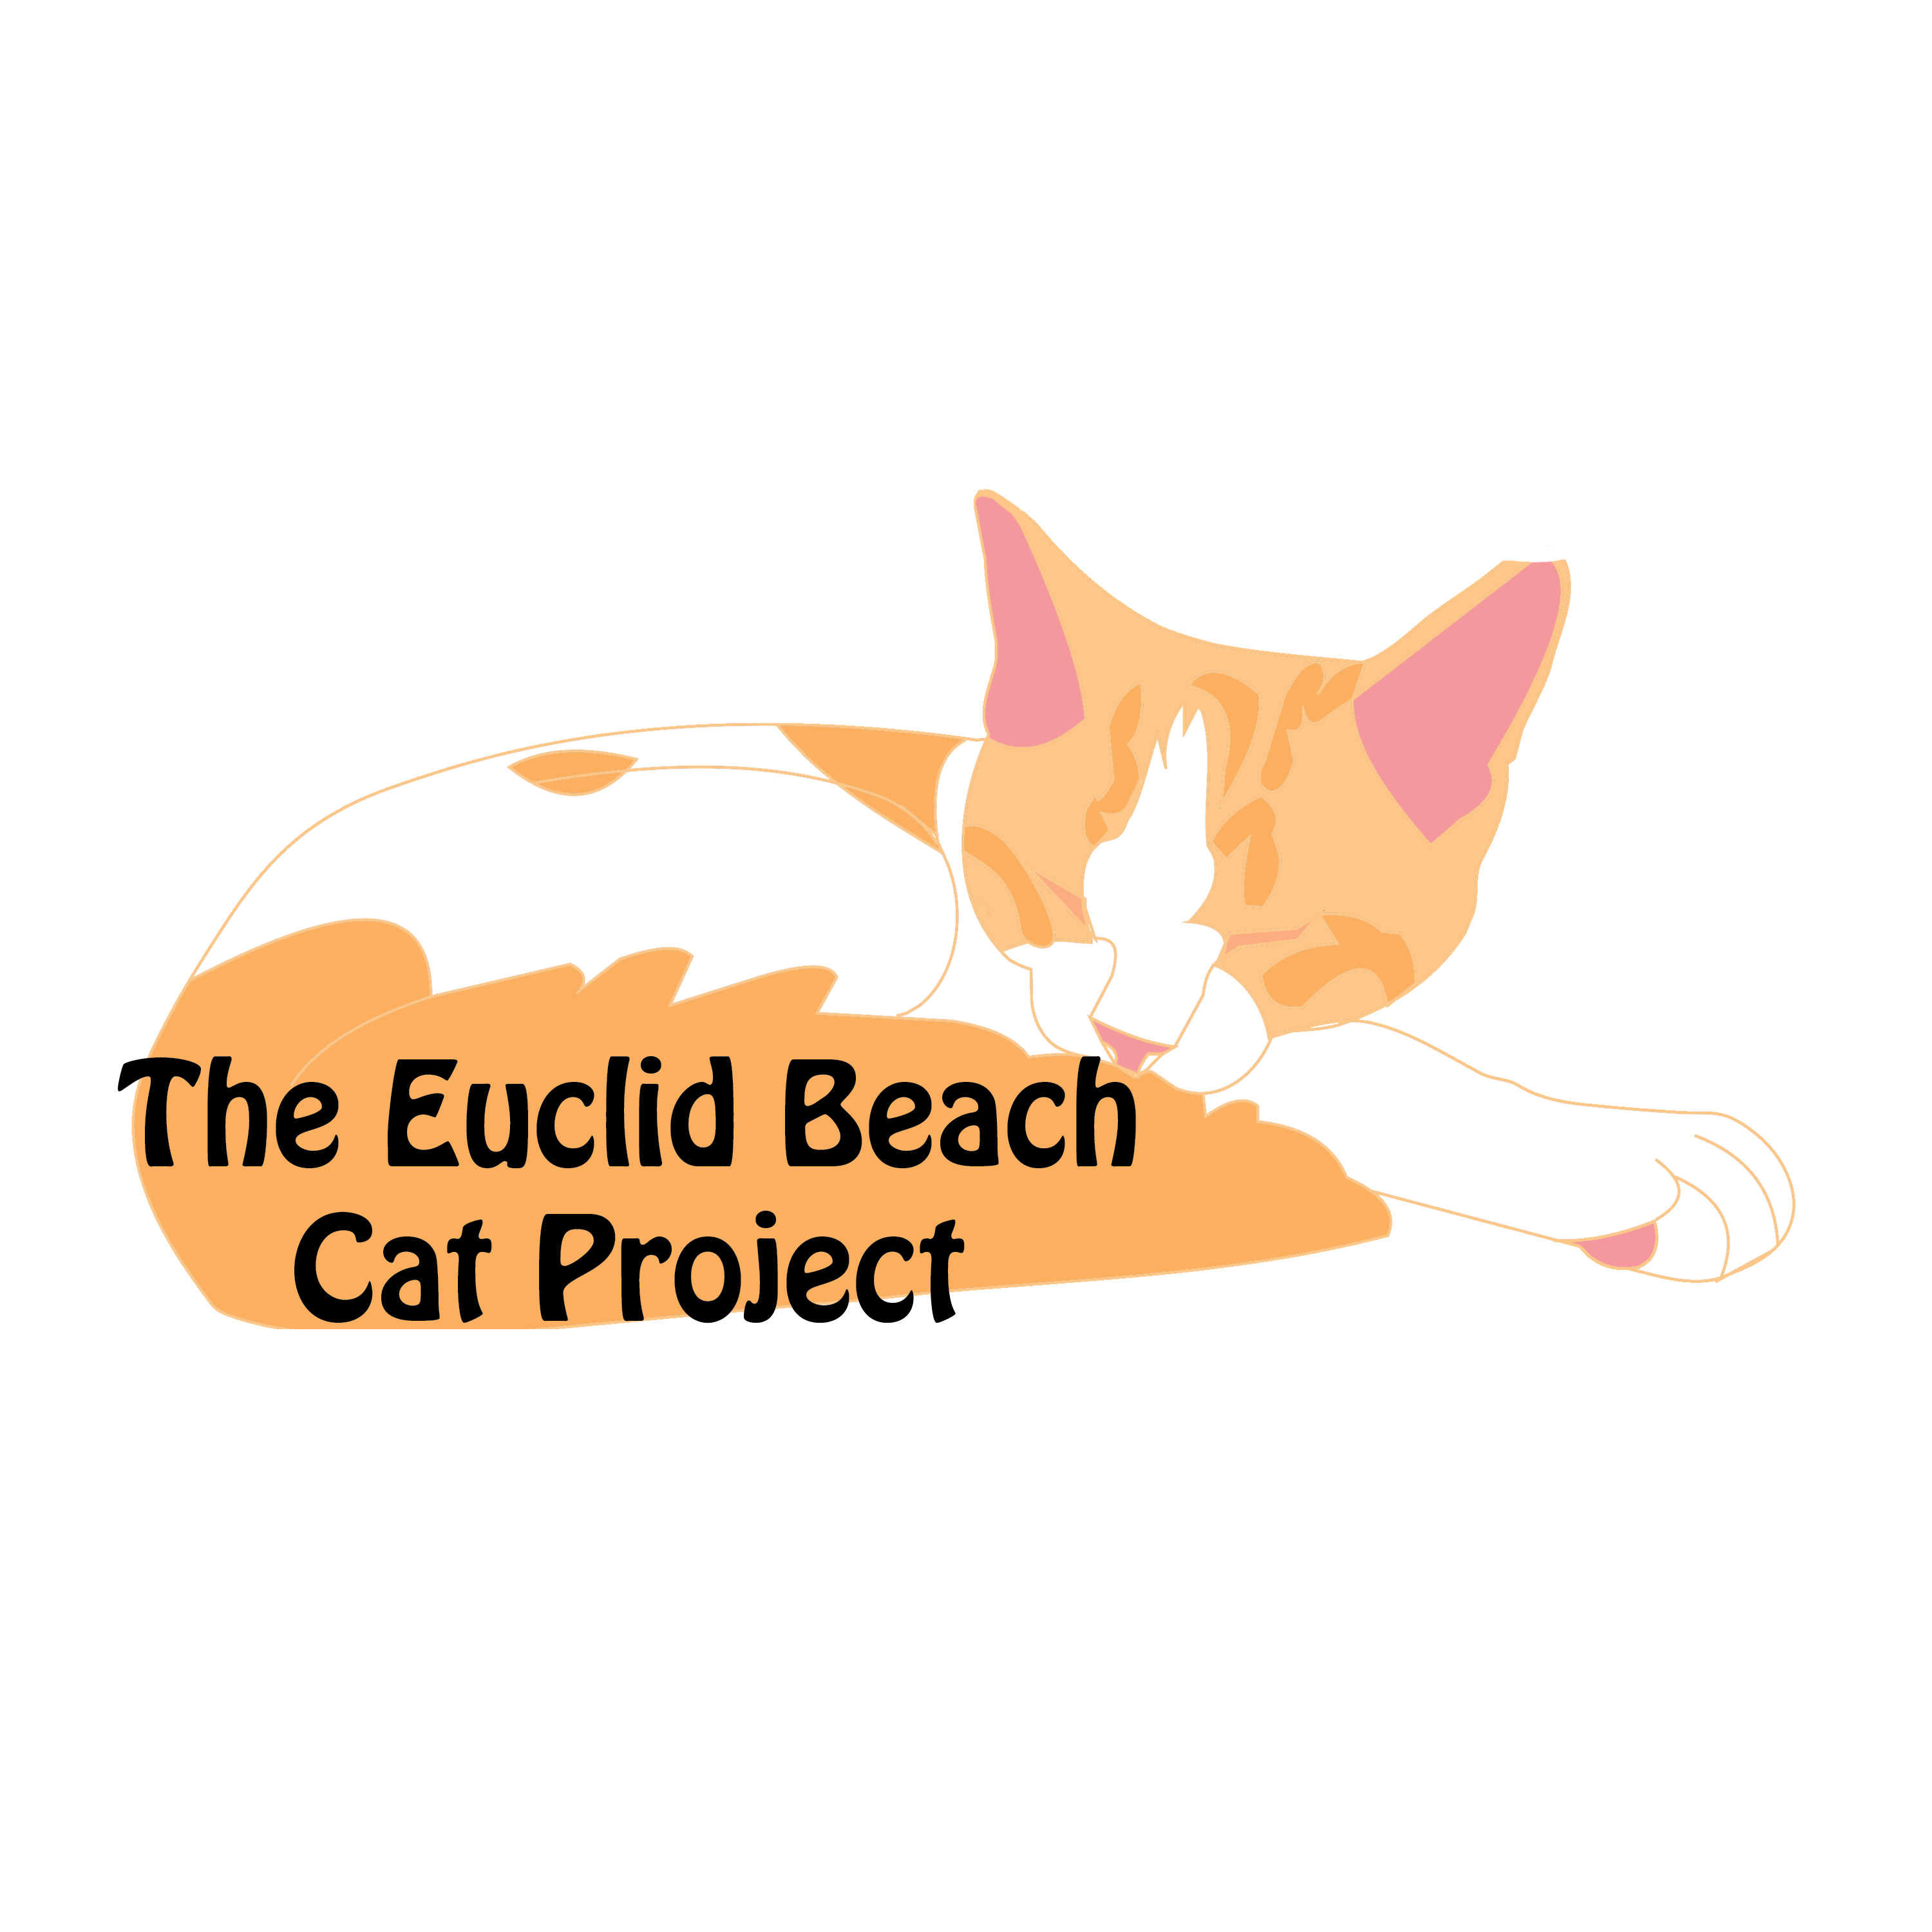 The Euclid Beach Cat Project